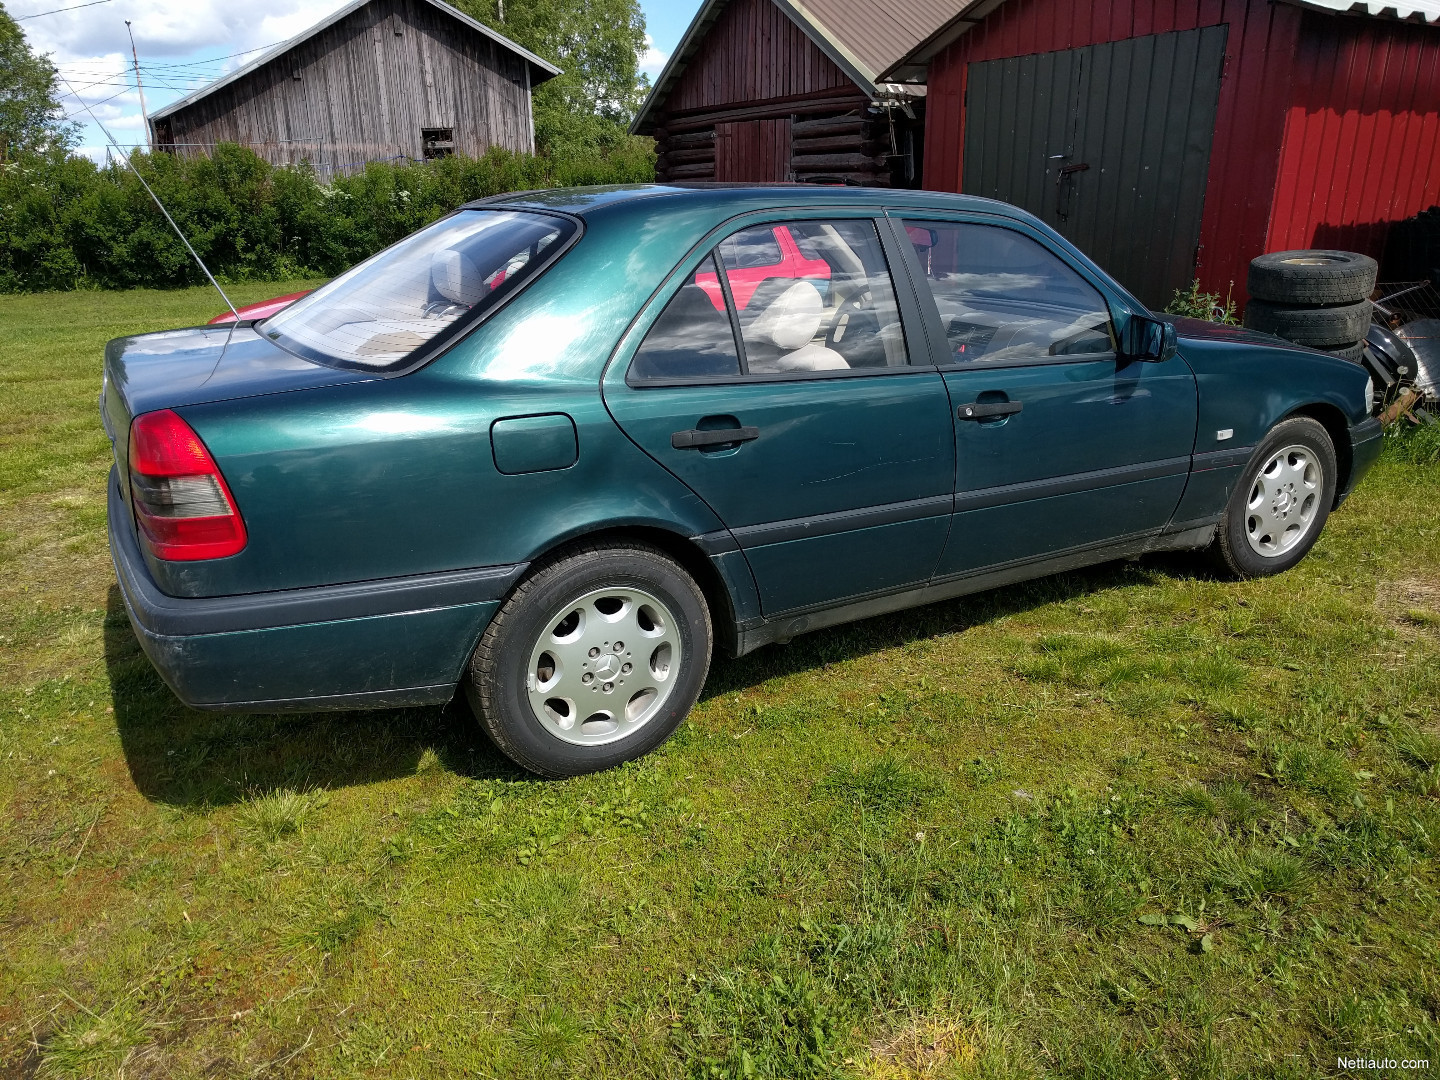 Mercedes benz c sedan 1995 used vehicle nettiauto for Mercedes benz remote start instructions